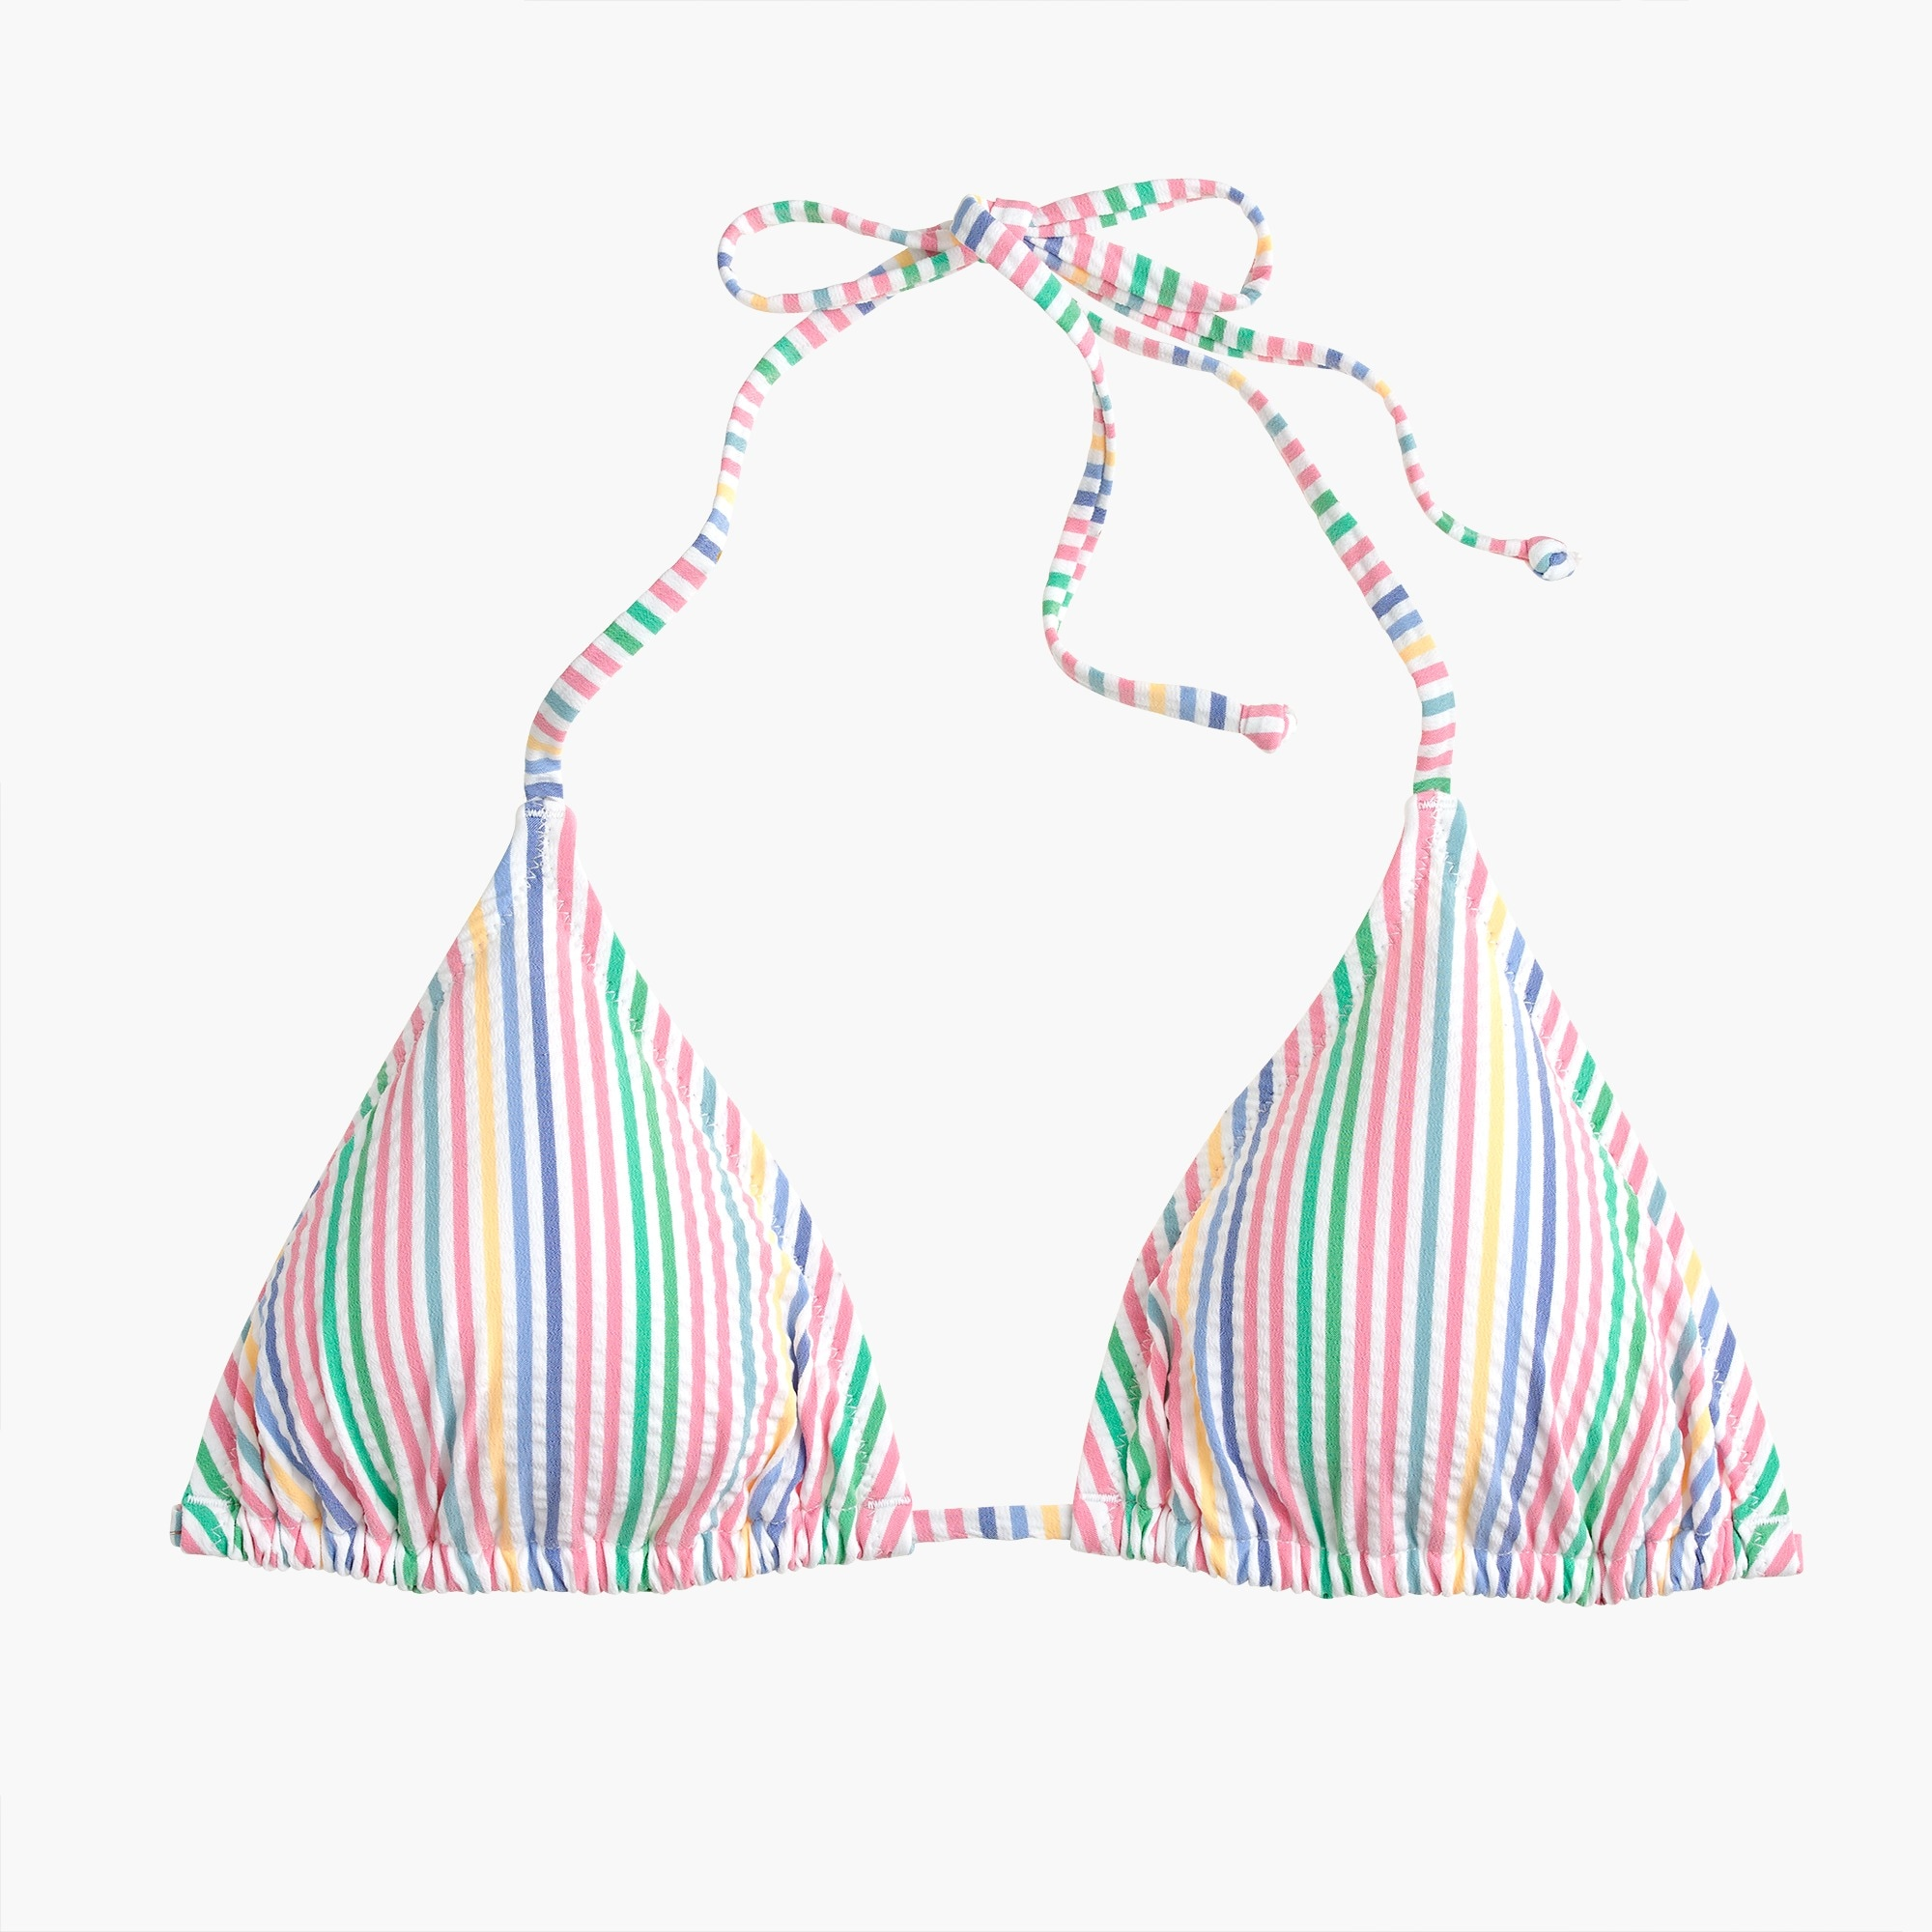 Image 4 for String bikini top in rainbow seersucker